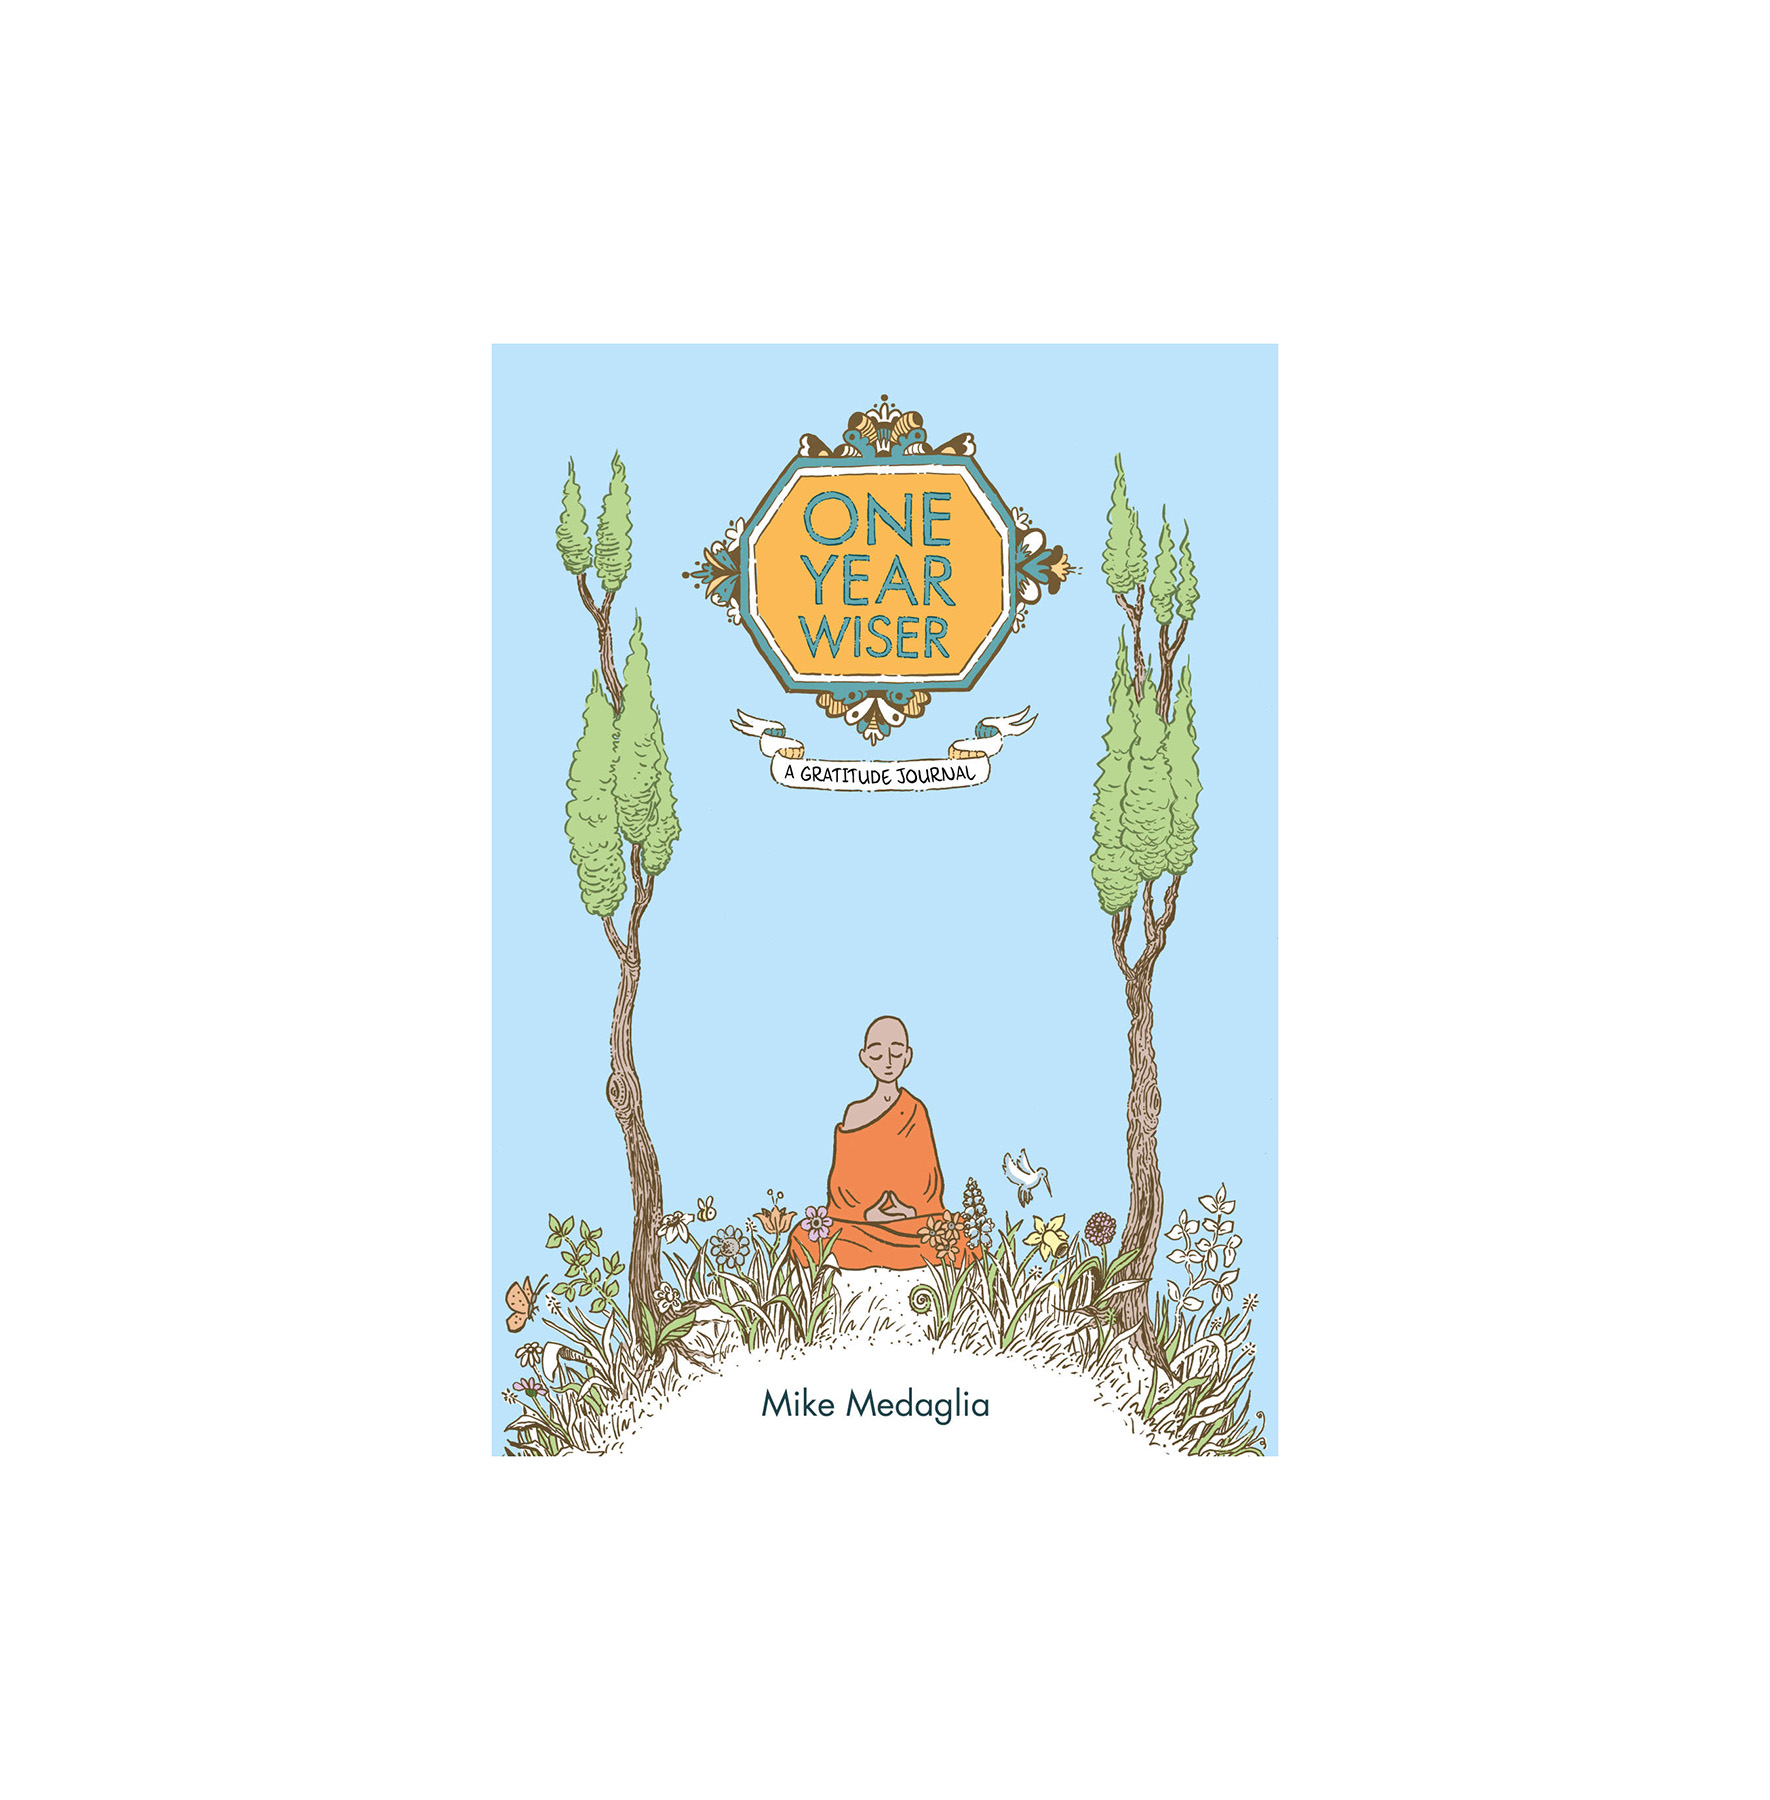 One Year Wiser: A Gratitude Journal, by Mike Medaglia